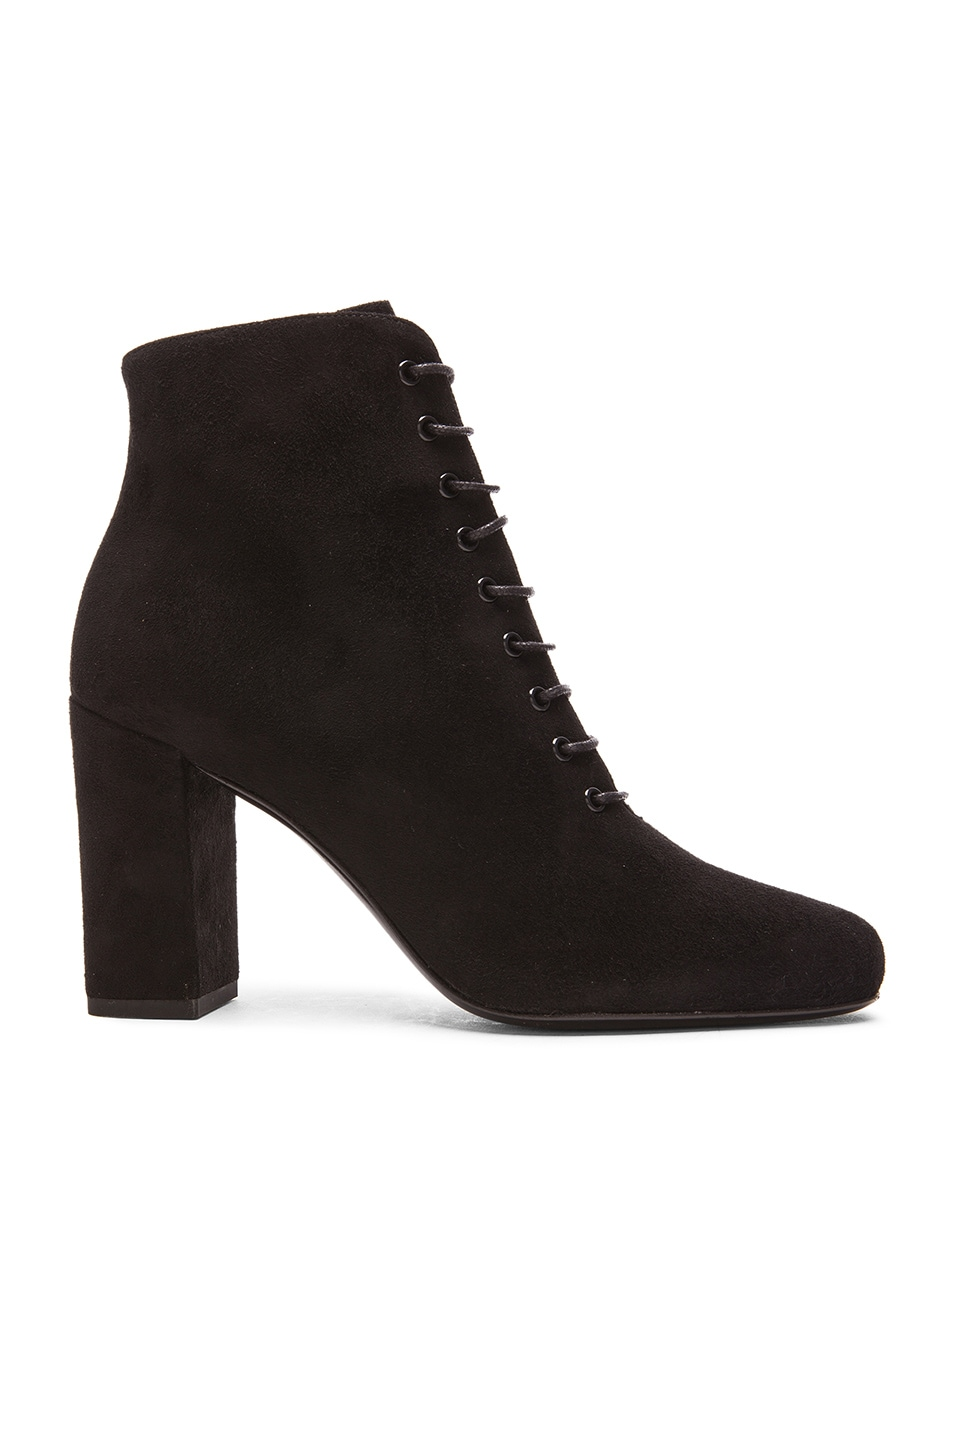 Image 1 of Saint Laurent Suede Lace Up Babies Boots in Black